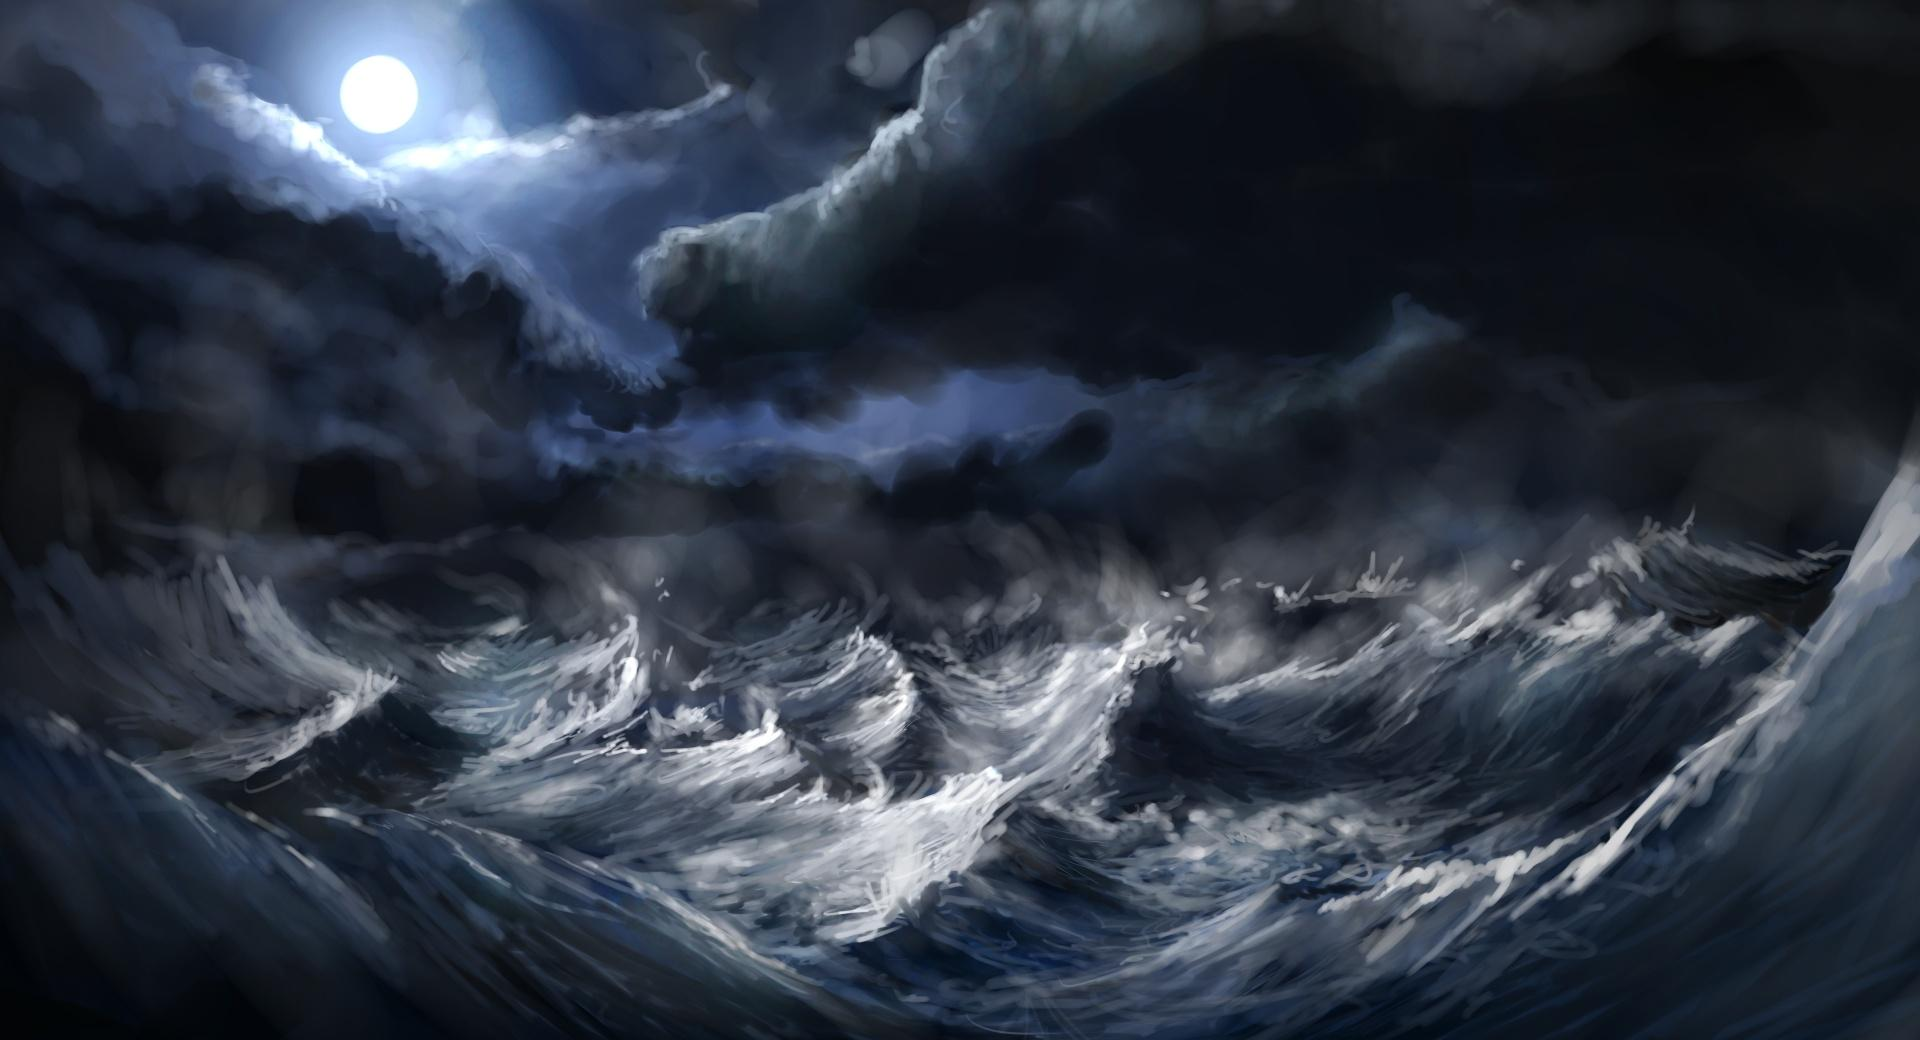 Stormy Sea Painting wallpapers HD quality